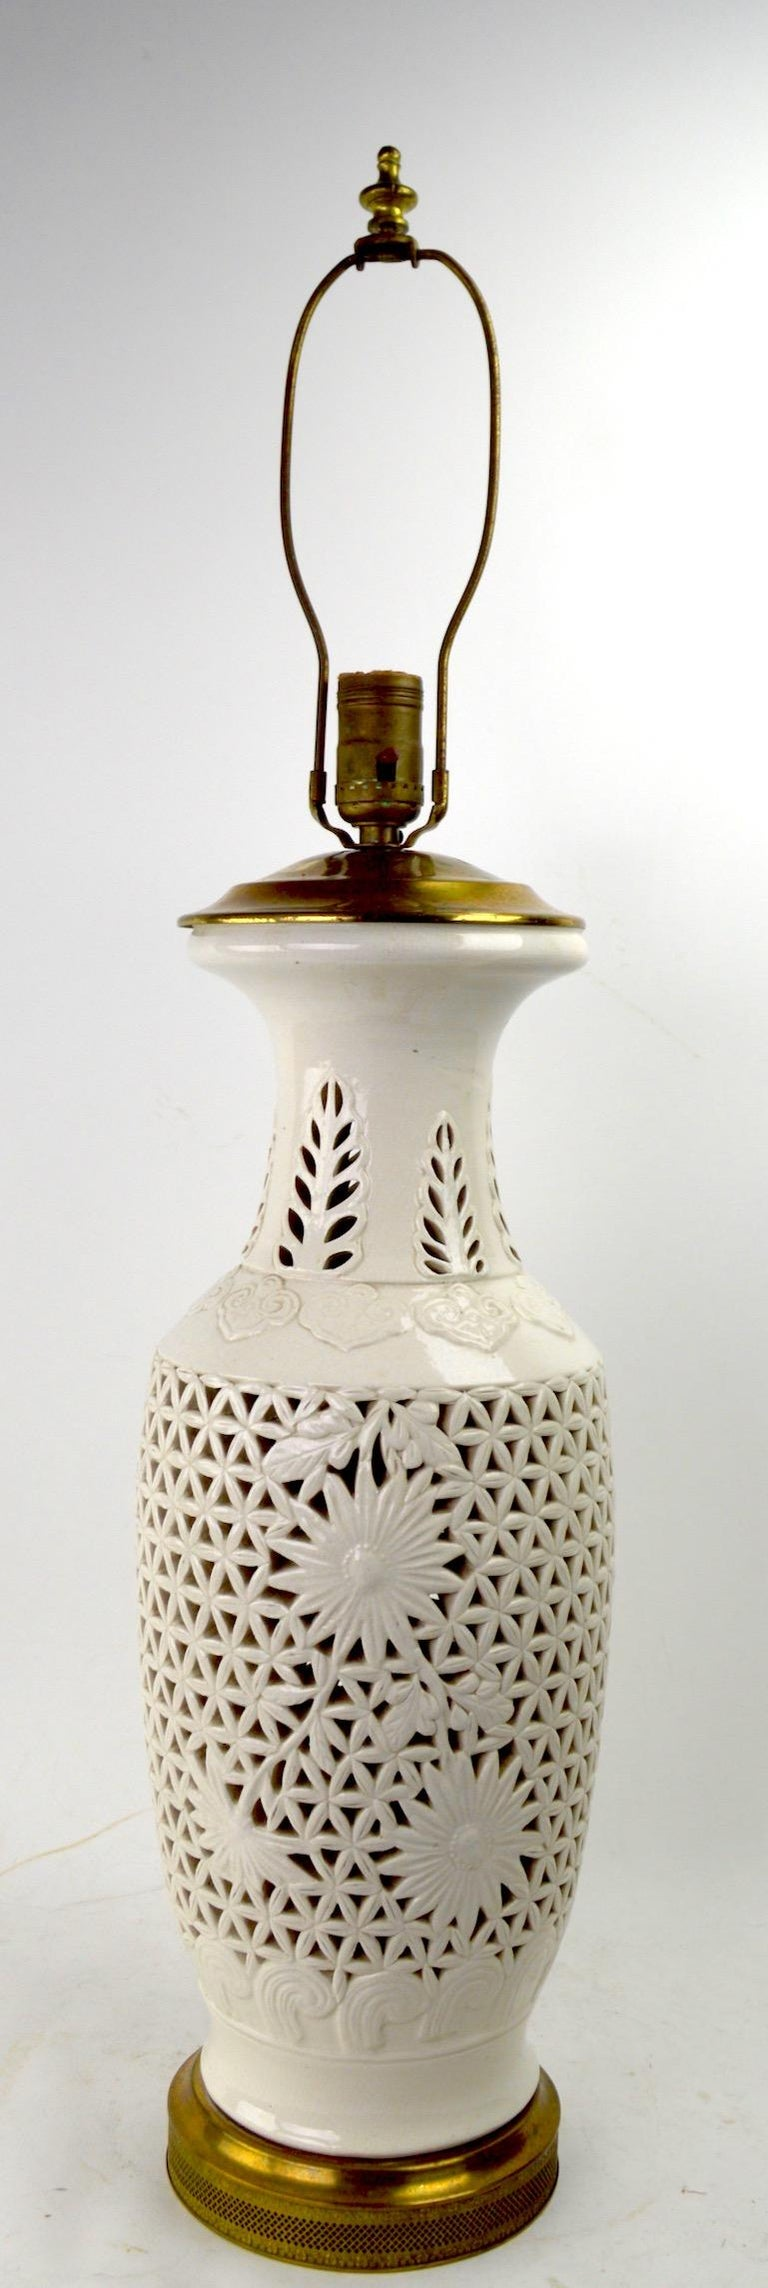 Decorative 20th century Blanc de Chine reticulated table lamp, in fine, original, working condition. Height to top of lamp body (without harp) 19 inch. Shade not included.